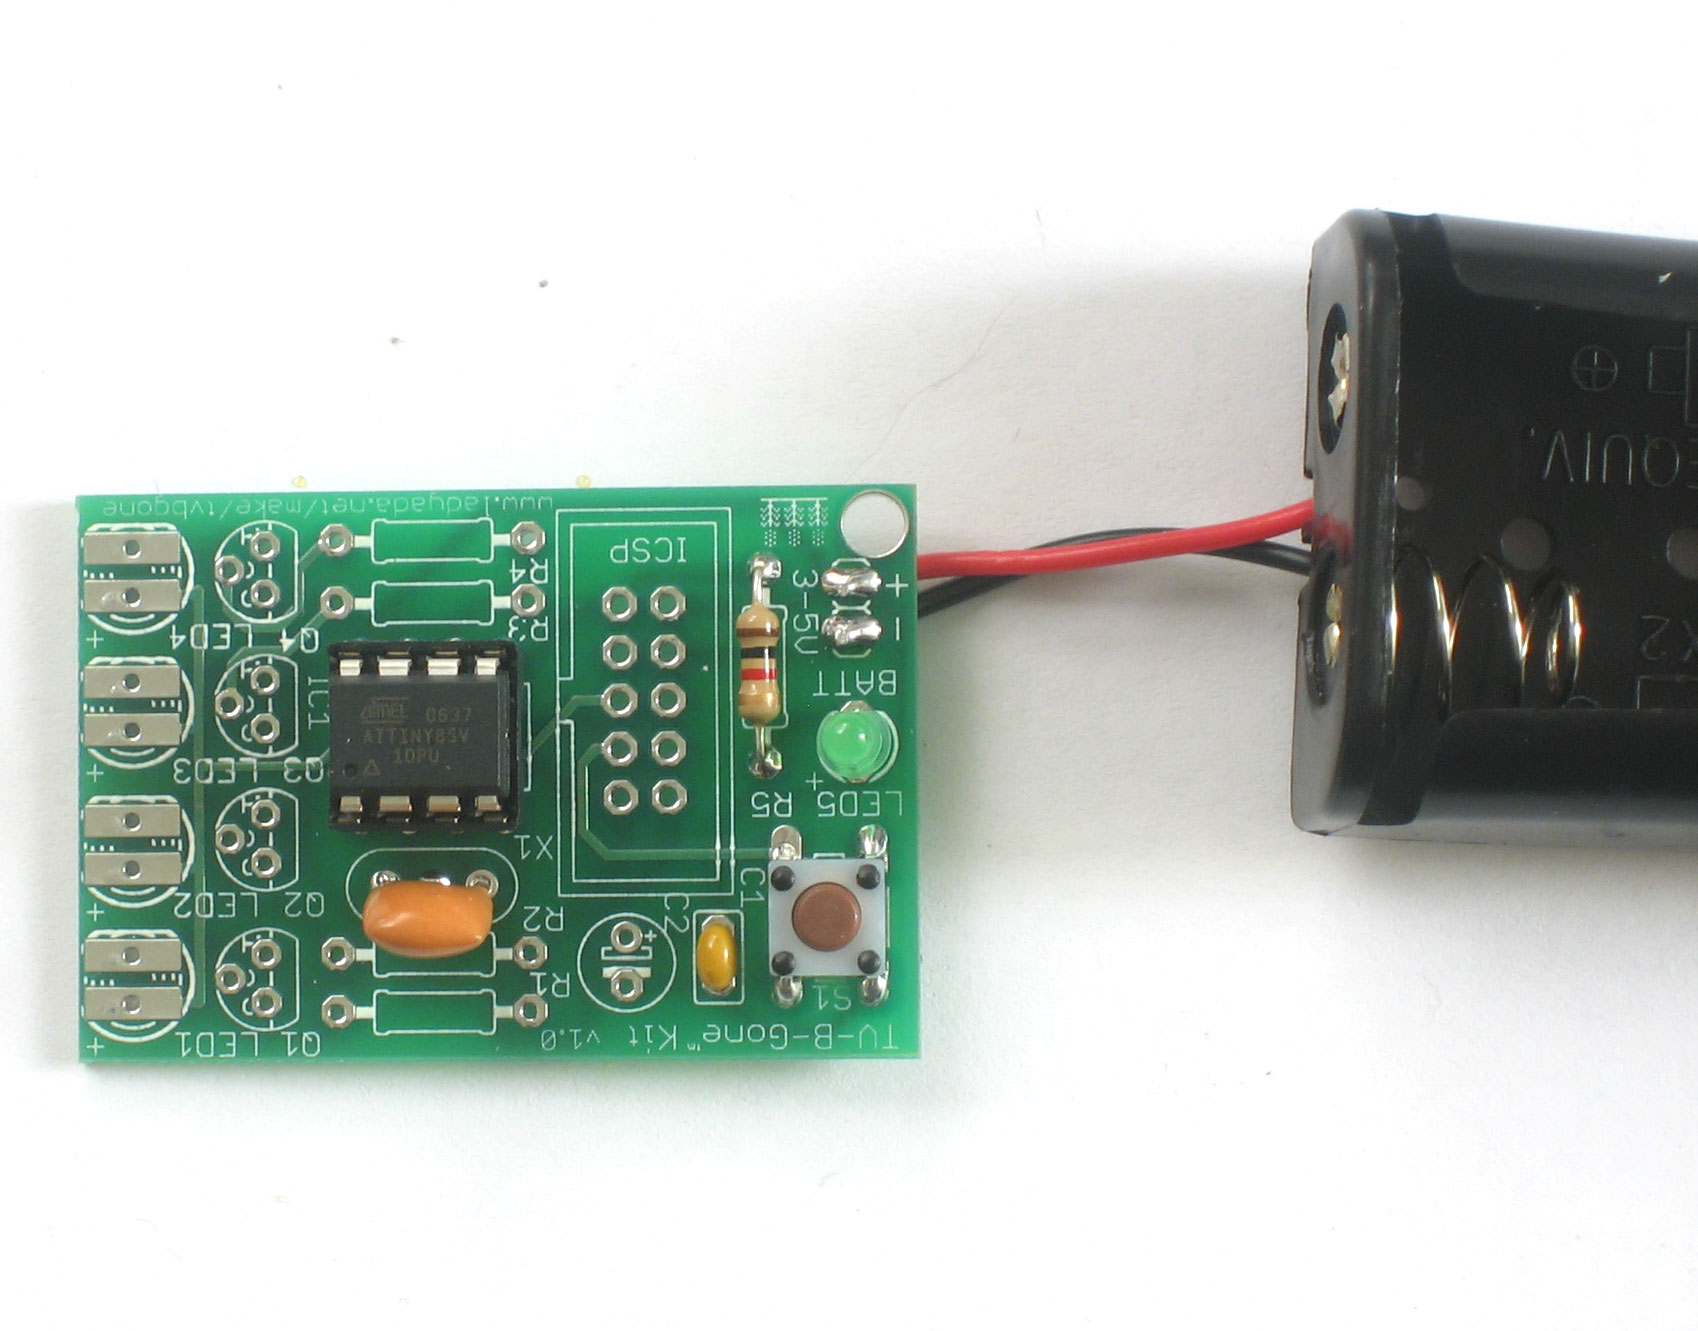 Tv B Gone Kit Diy Universal Remote Printed Circuit Board Of Transistors Capacitors And Other Components Carefully Insert The Microcontroller Into Socket Make Sure That Little Dot Triangle Are At End With Notch In